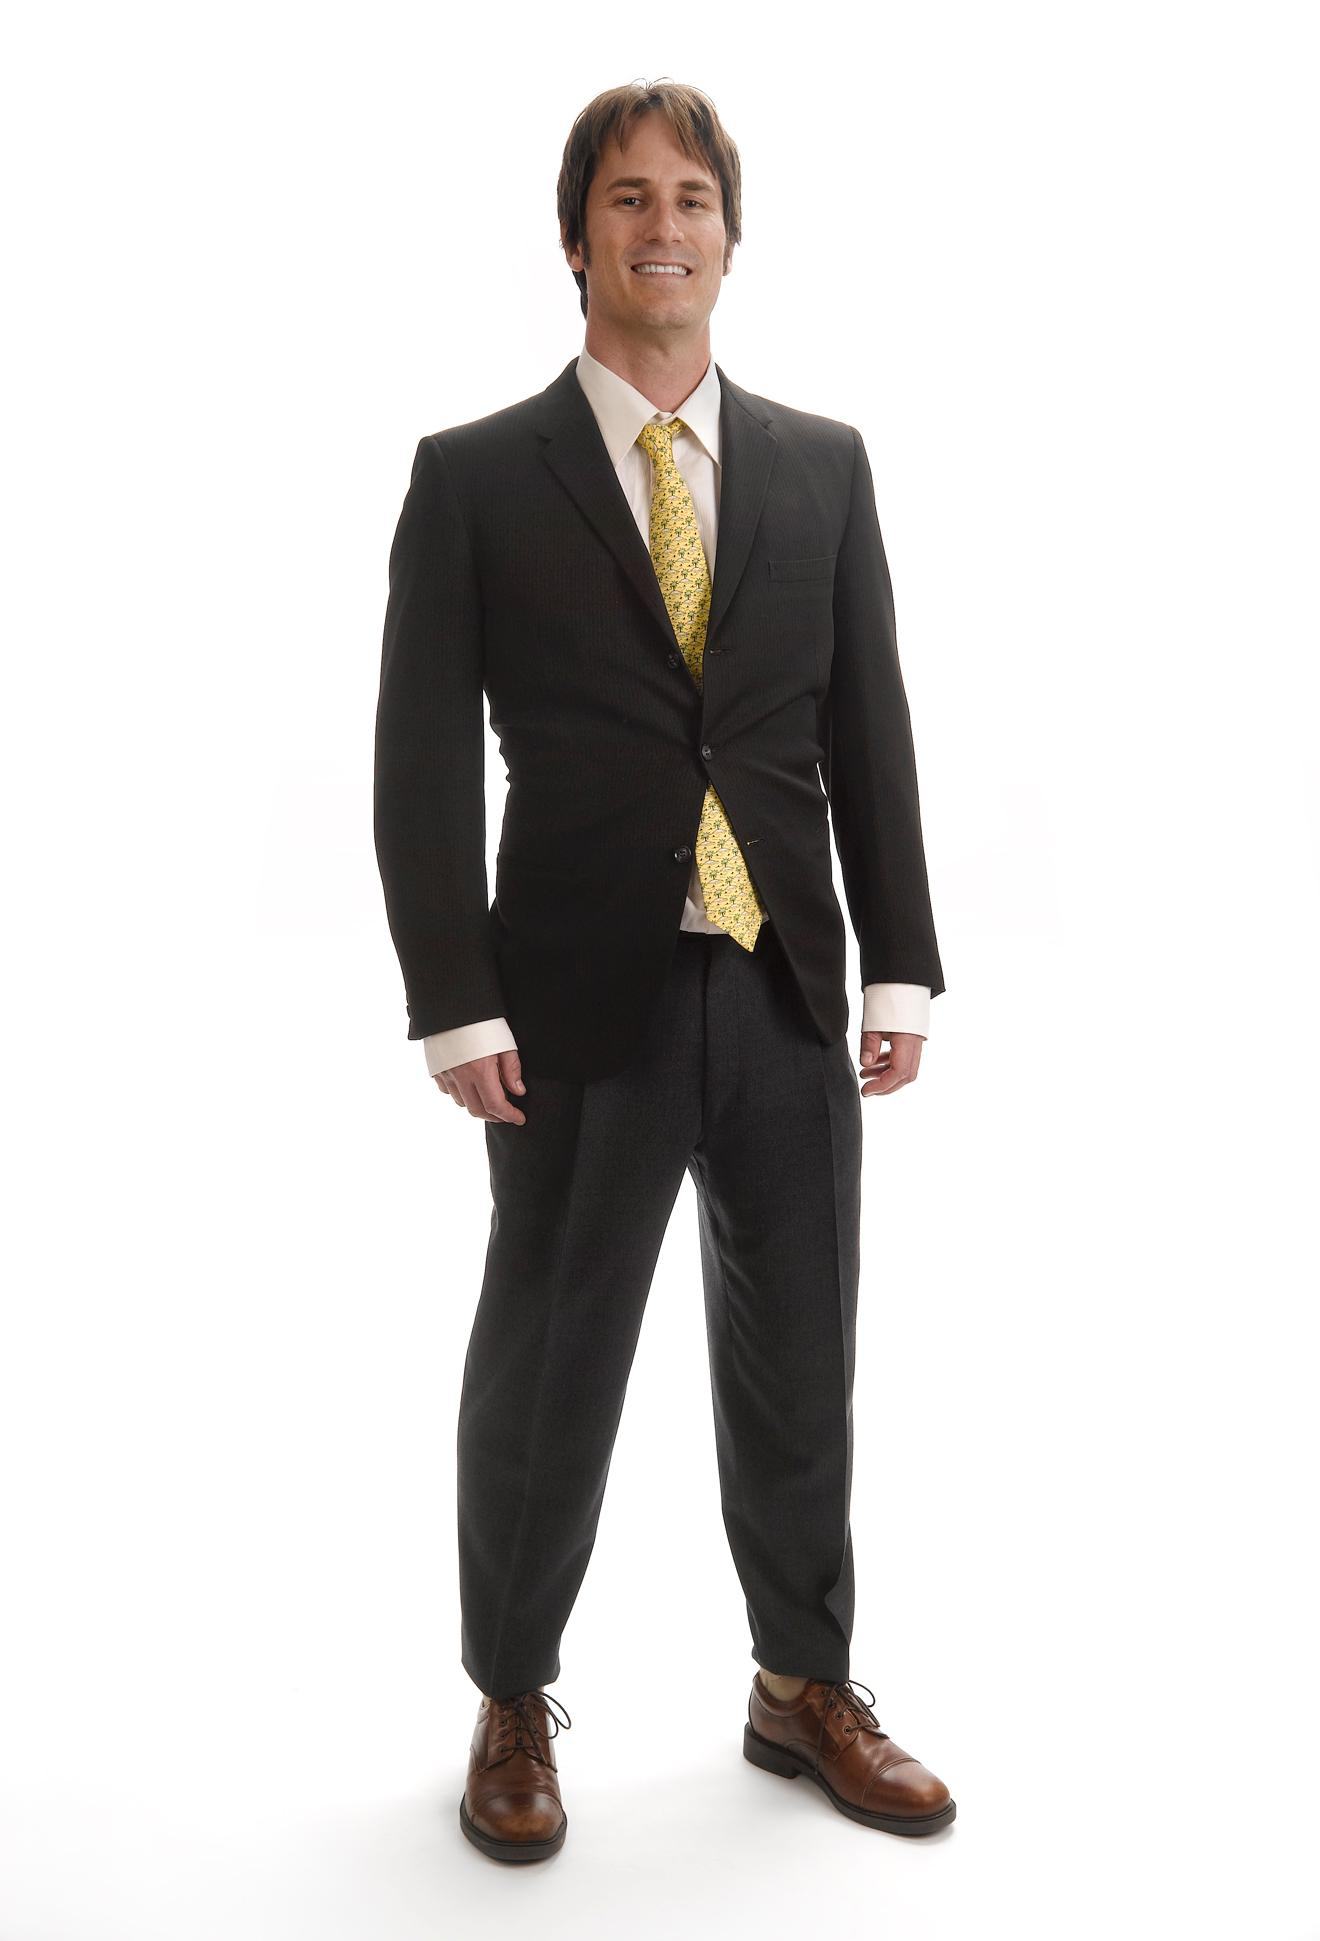 What To Wear To A Job Interview Officeteam